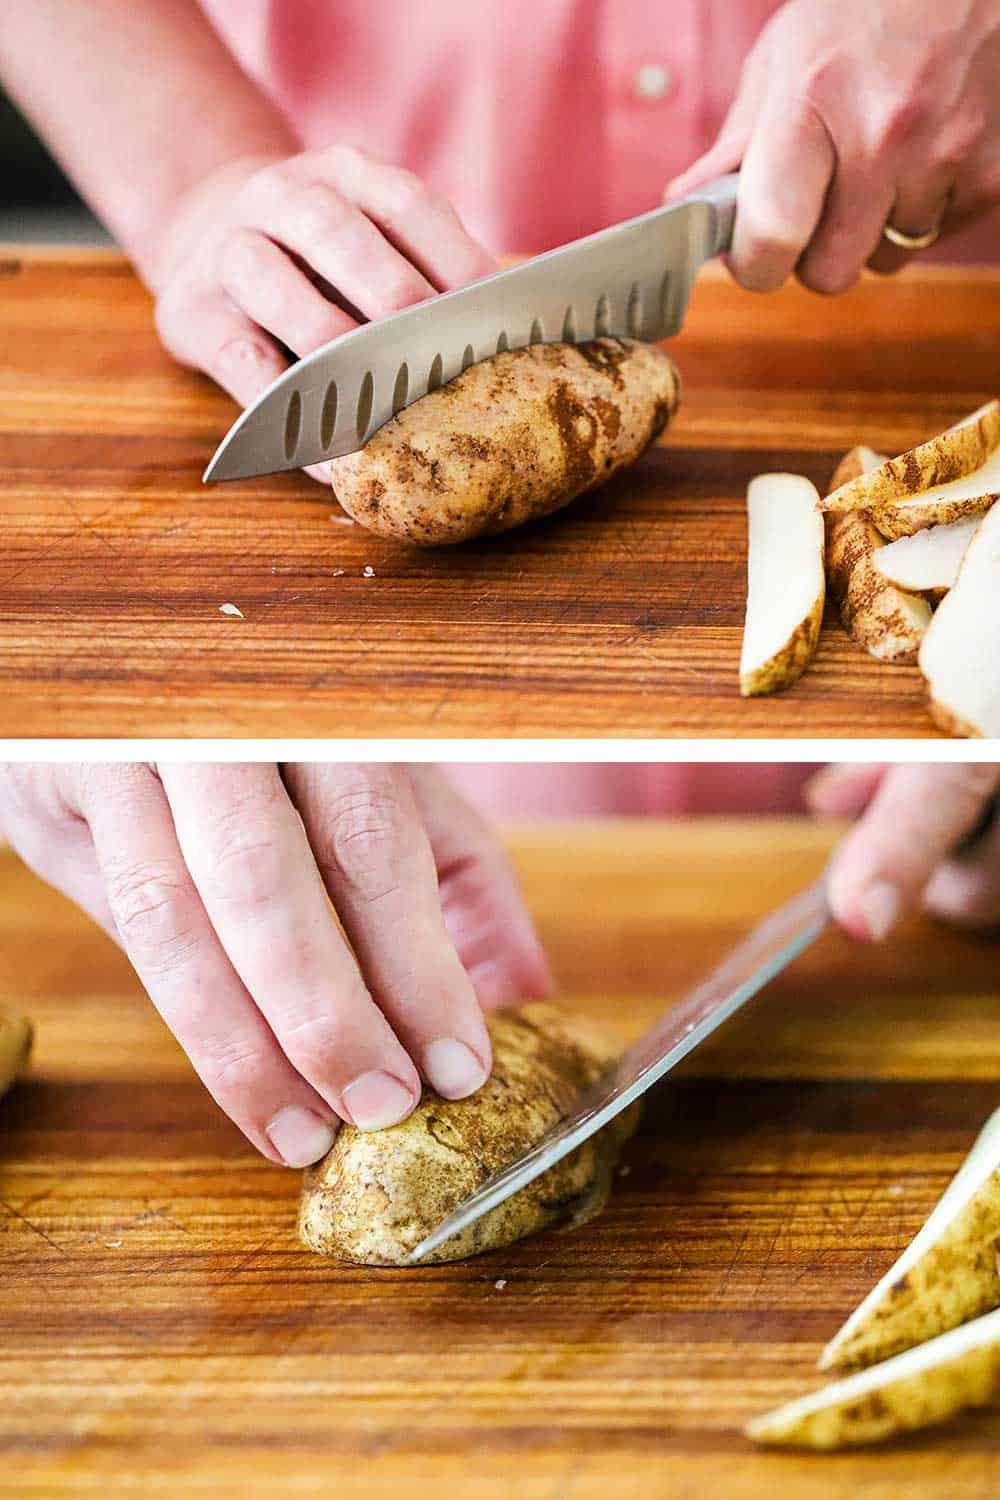 A person slicing a russet potato in half with a chef's knife and the cutting that halved potato into wedges.